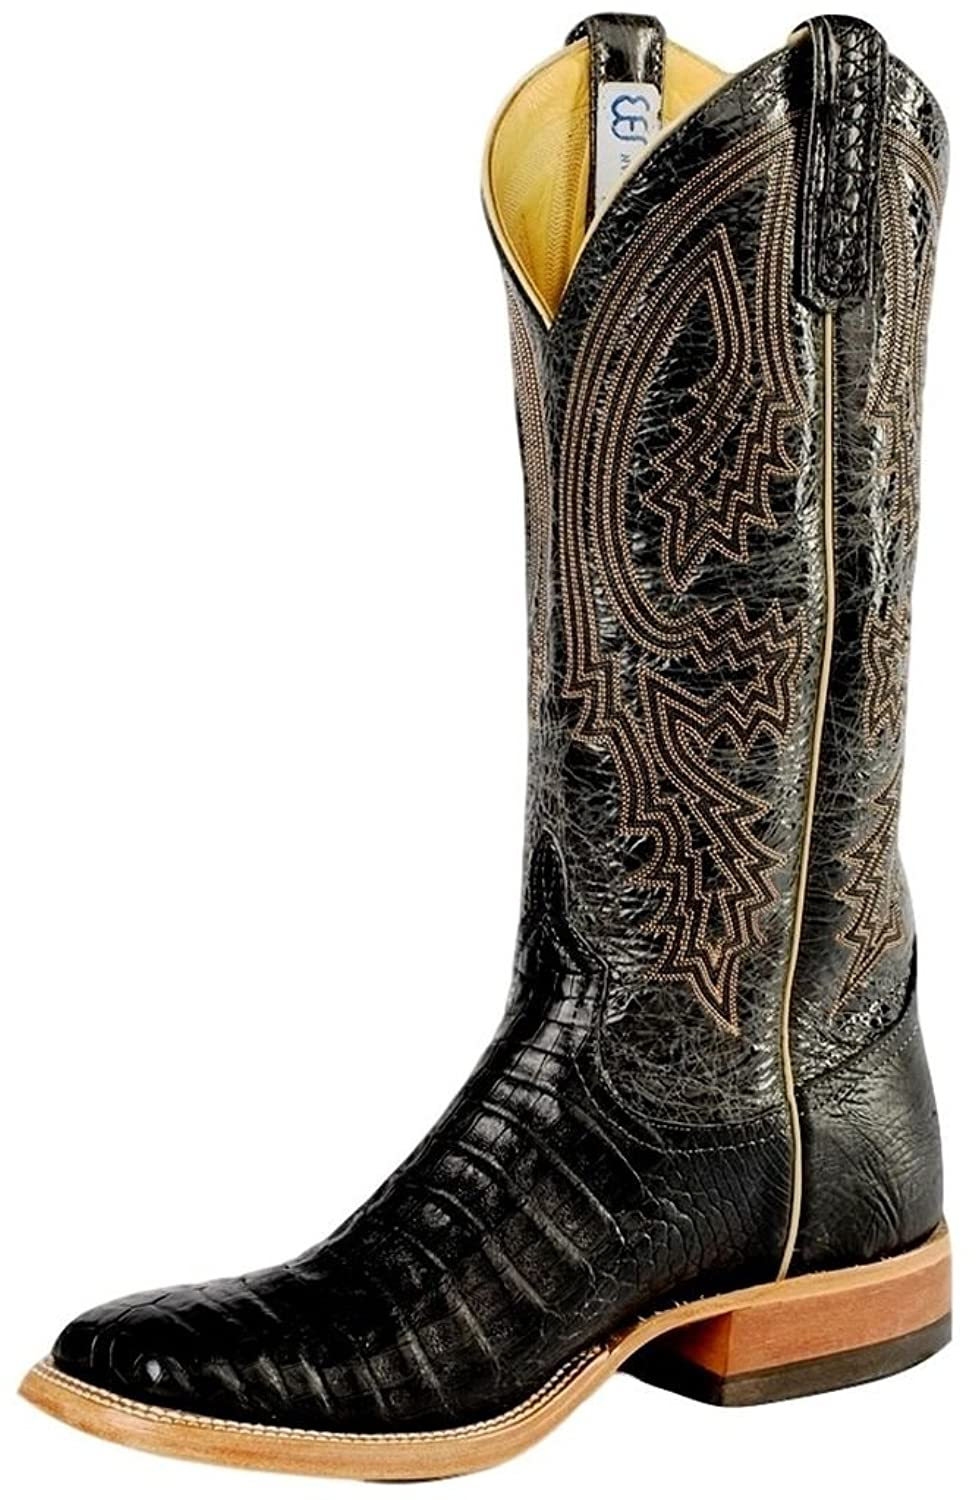 Anderson Bean Western Boots Mens Leather Caiman Belly Edgy Black S1104